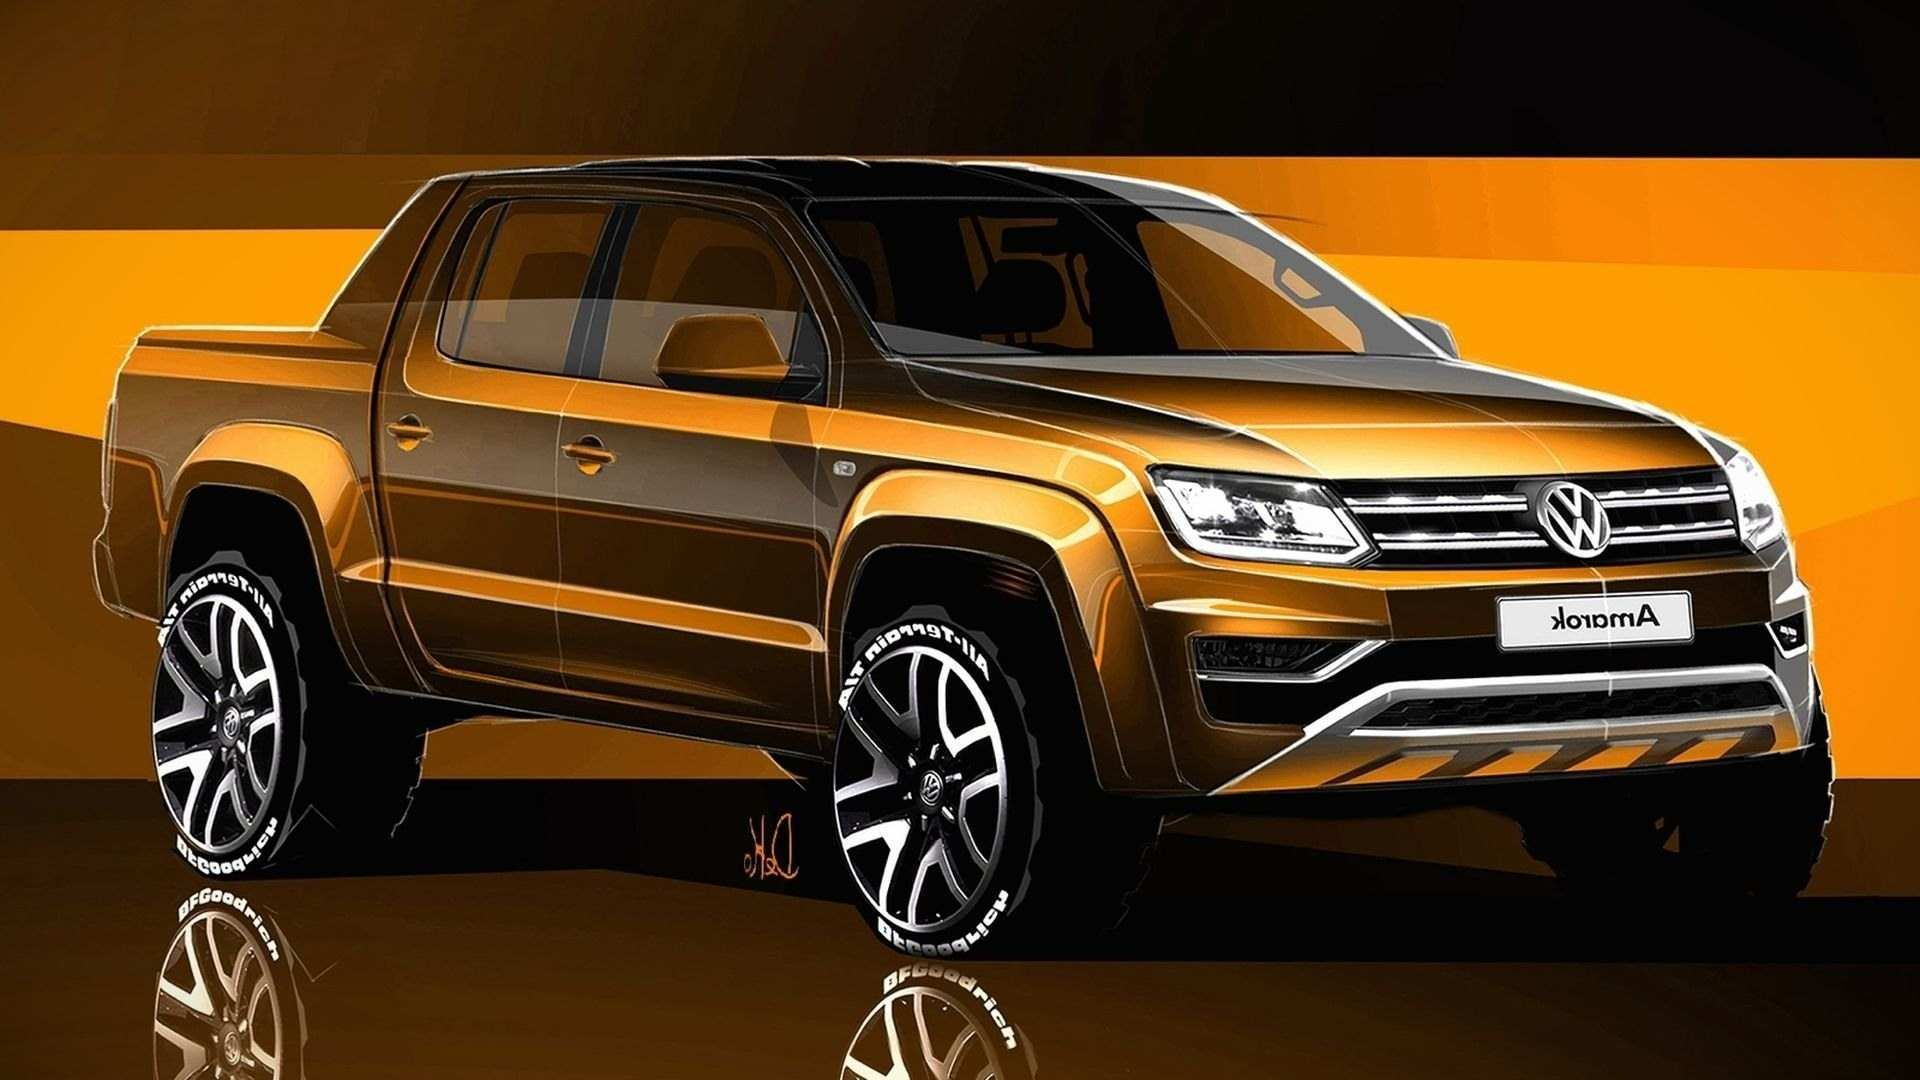 84 Great New Volkswagen Amarok 2020 Pricing with New Volkswagen Amarok 2020